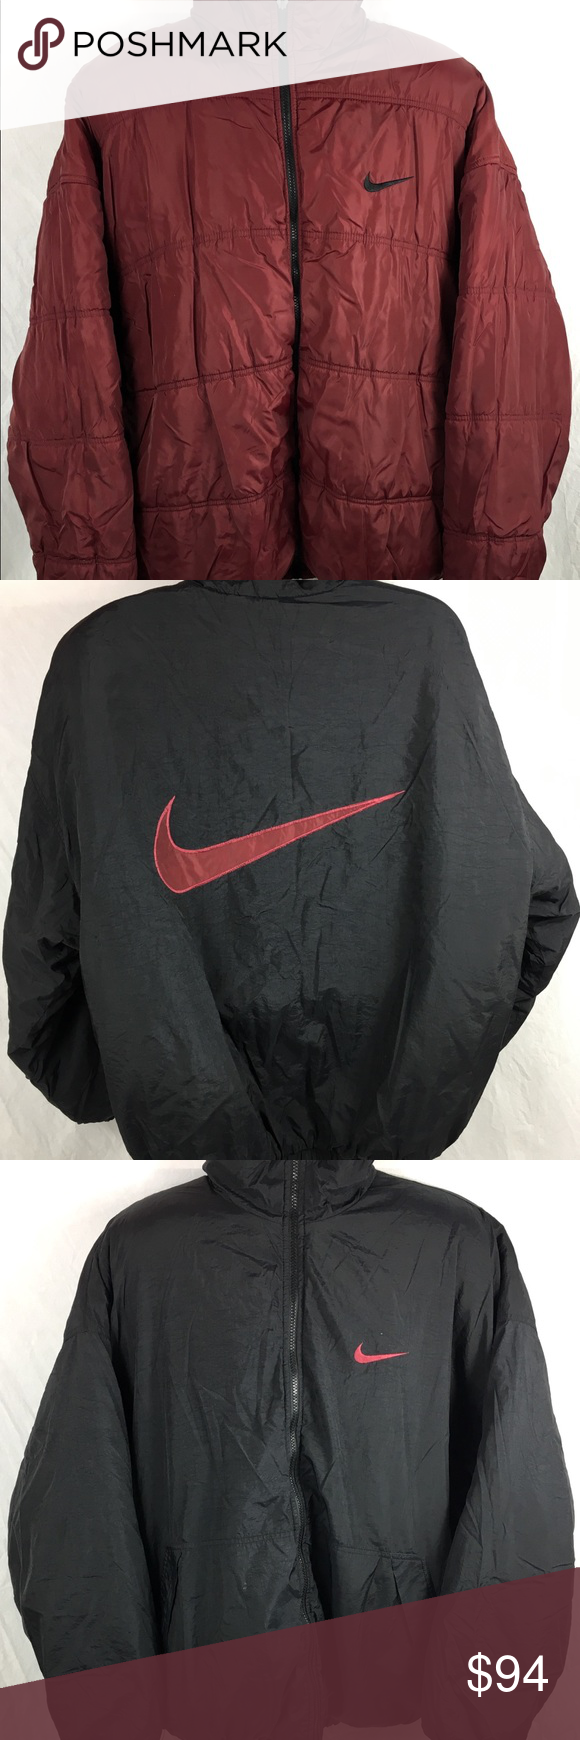 f899acf7bf13 Vintage Nike Big Swoosh Reversible Puffer Jacket Jacket is in excellent  condition. No rips or